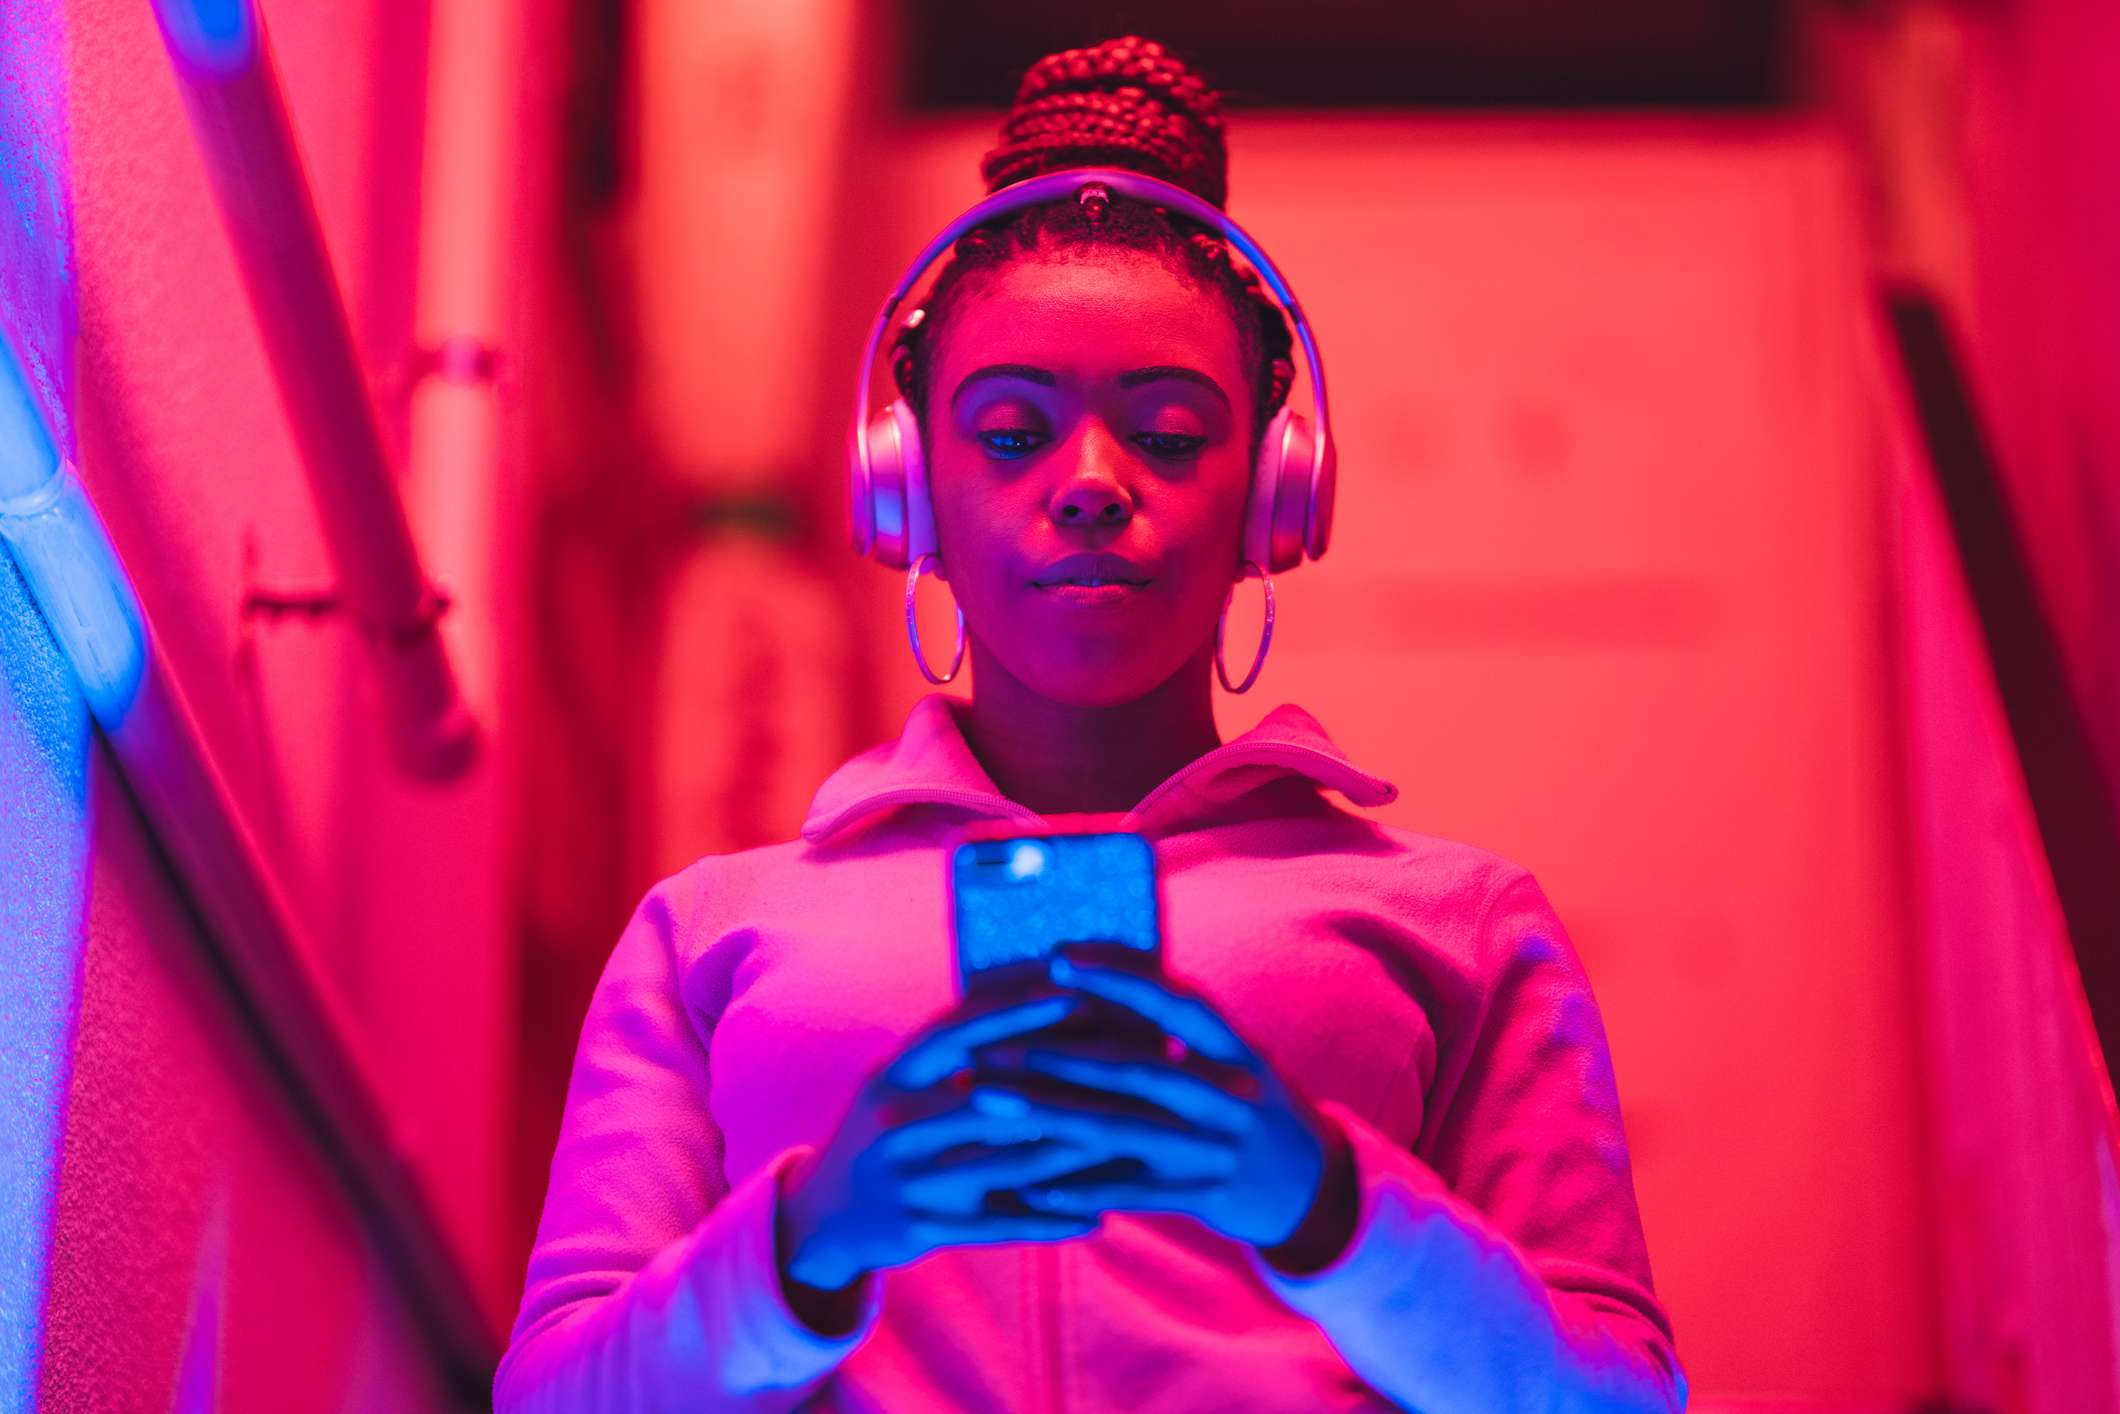 Someone listening to audio from their smartphone through headphones while standing under a neon light.